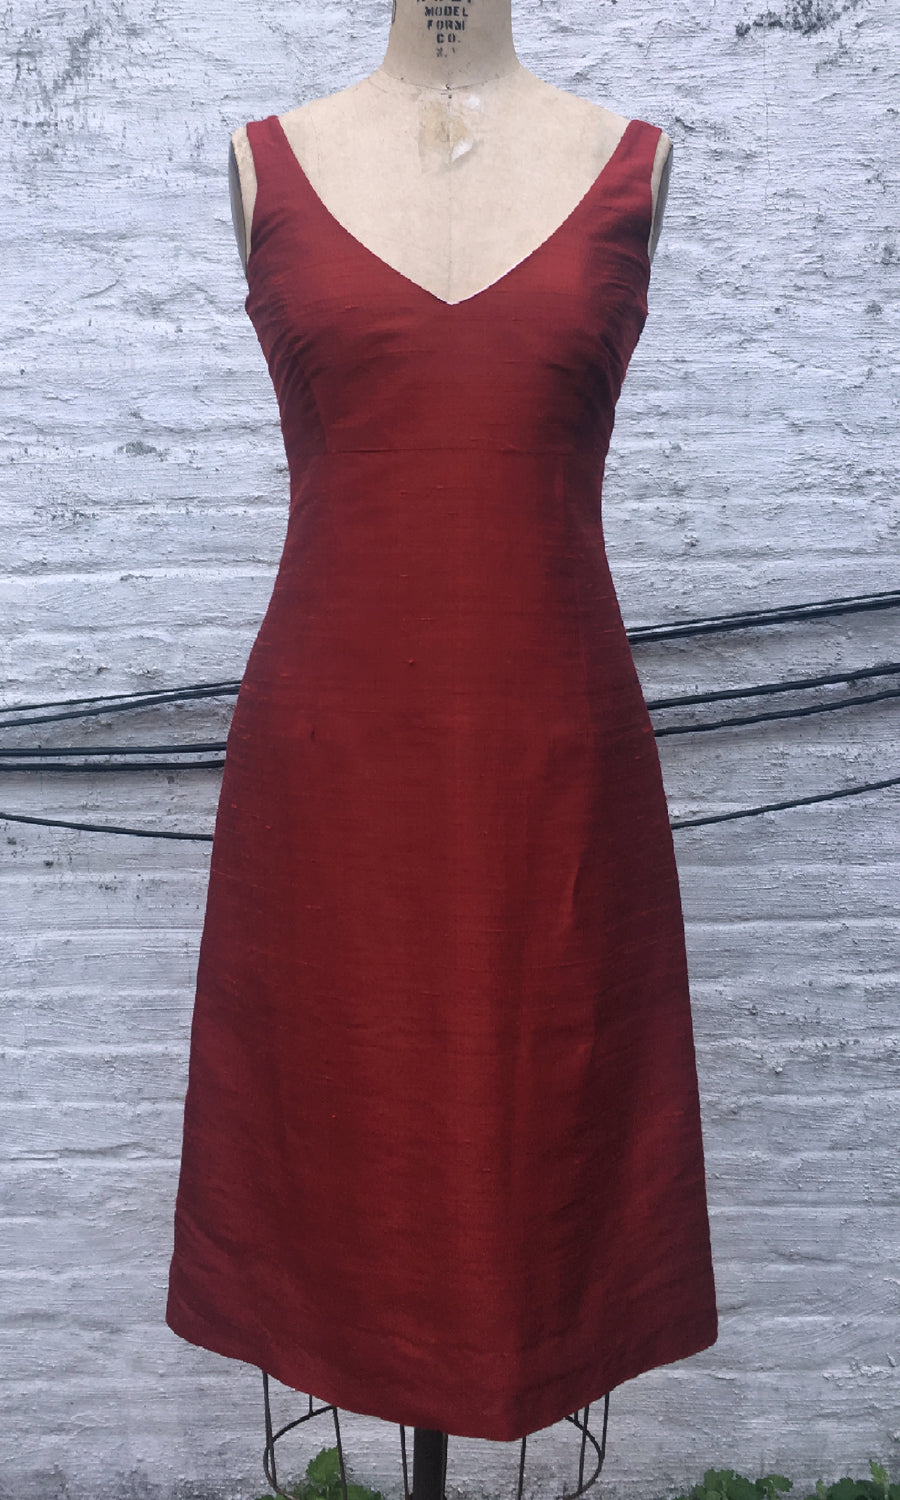 Ruby Red Classic V-neck A-line Cocktail Dress, size X-small